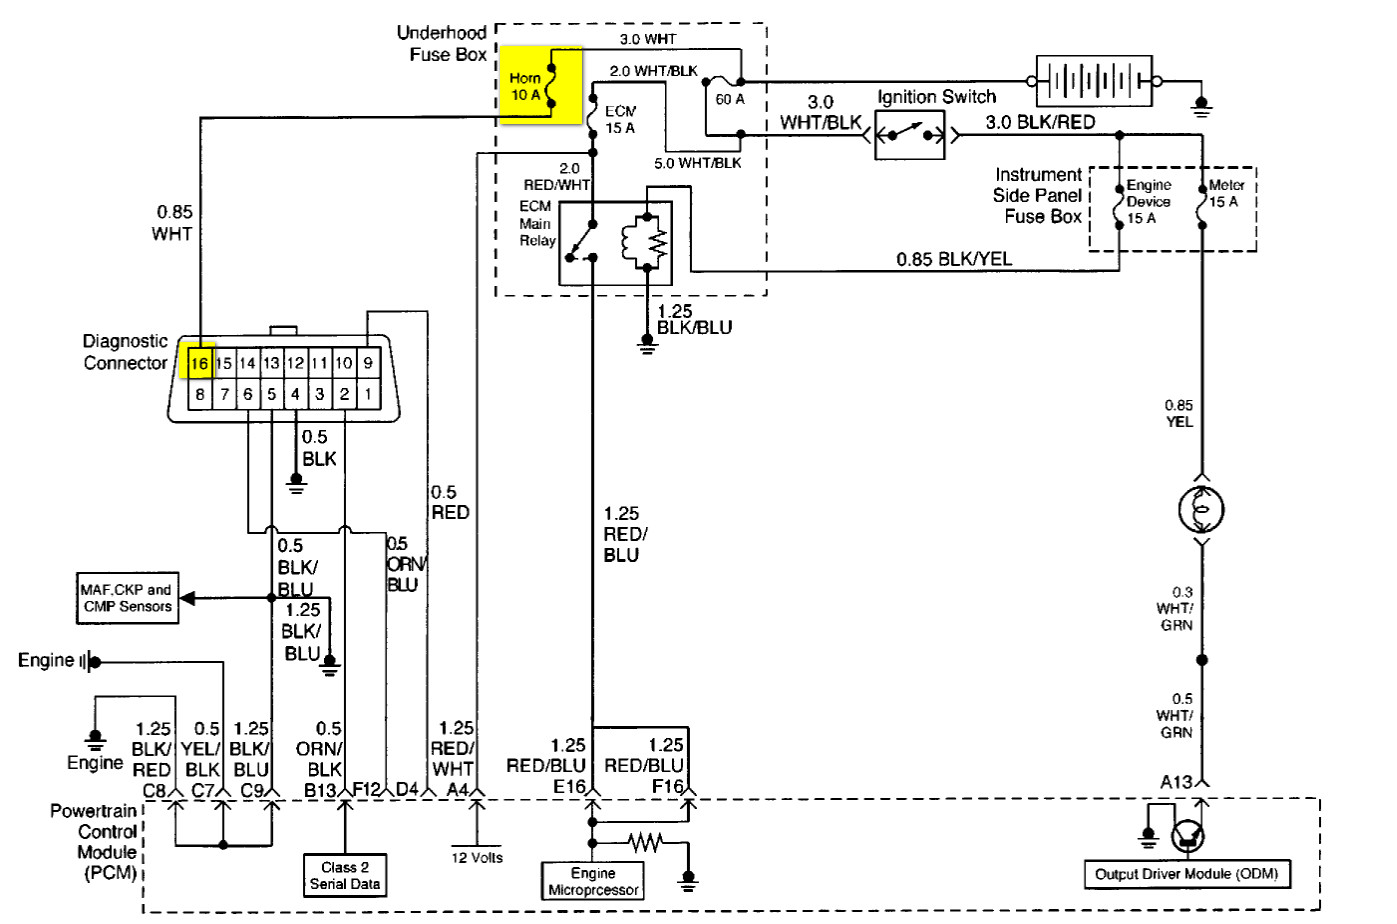 diagram] 2010 prius obd ii wiring diagram full version hd quality wiring  diagram - mate-diagram.radd.fr  diagram database - radd